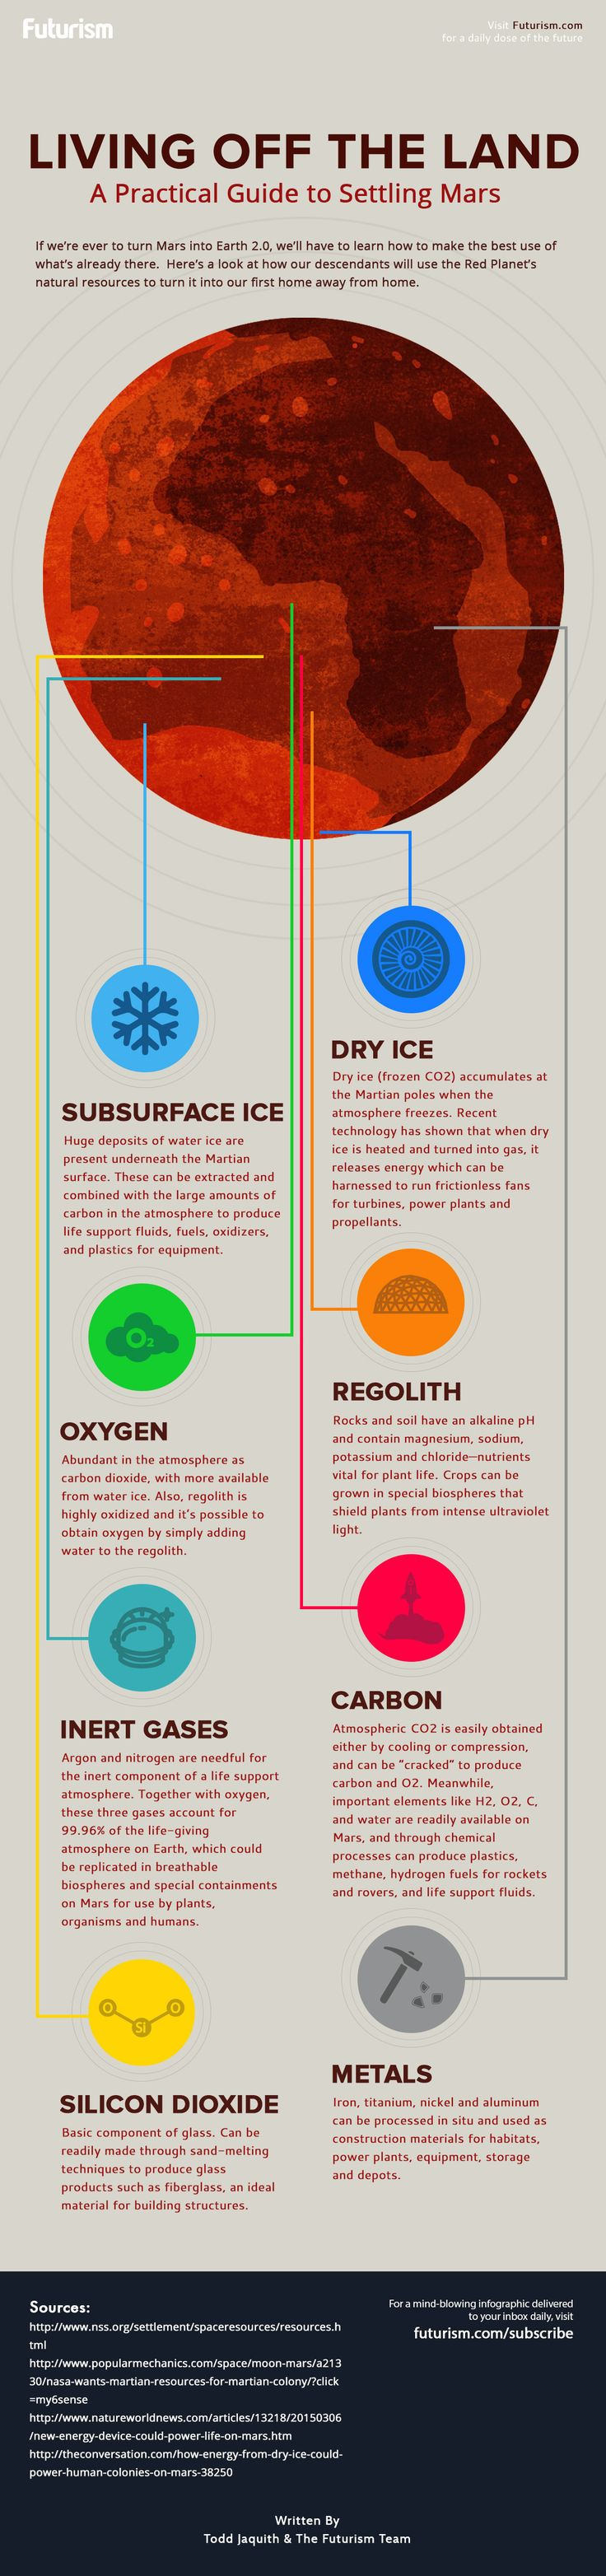 Living Off The Land: A Guide To Settling Mars [Infographic]